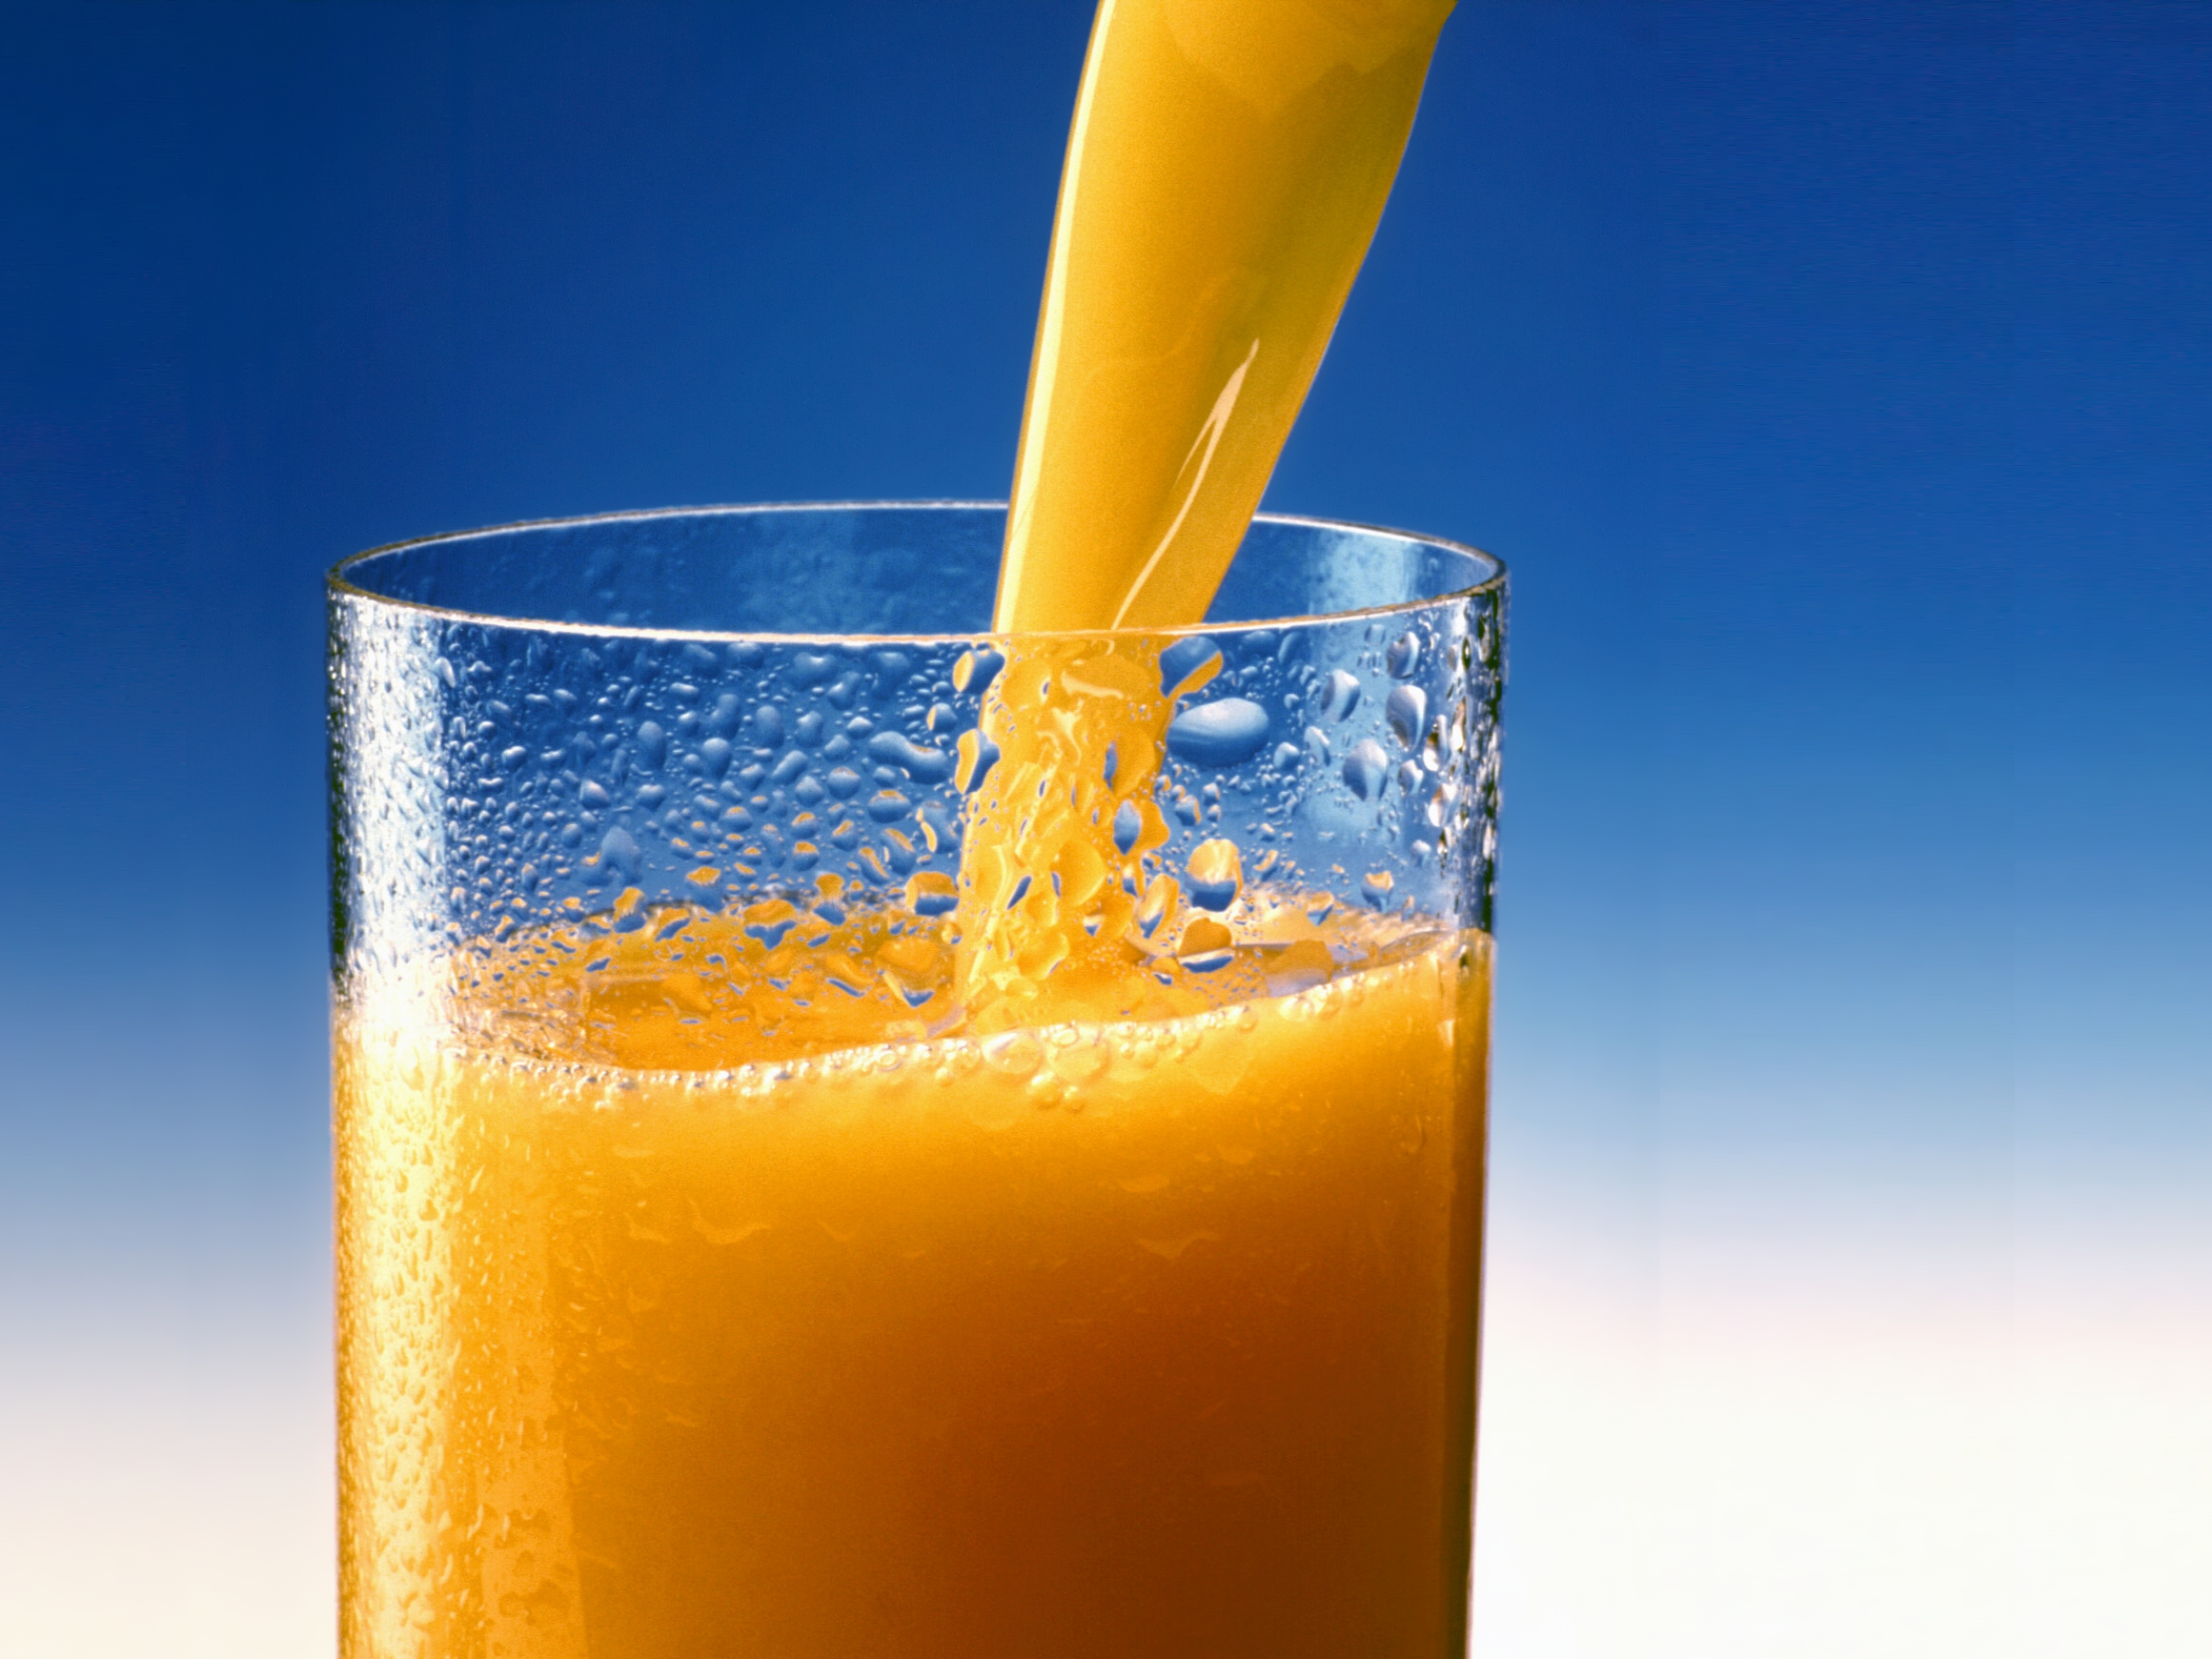 fruit juice is a healthy food for babies under 1 year